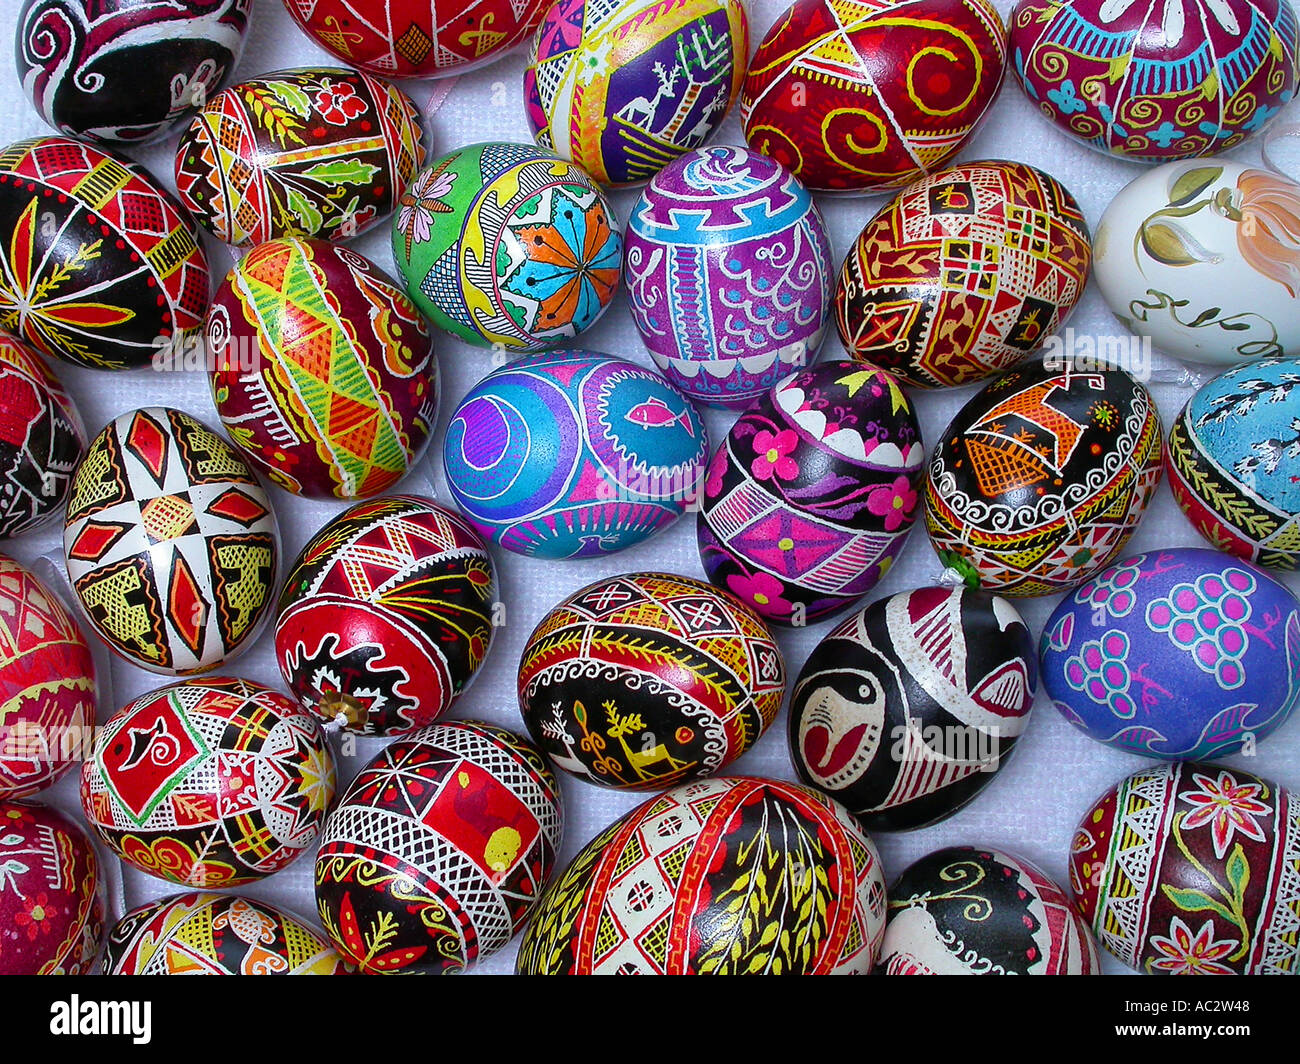 Collection of hand made painted Ukrainian Easter eggs - Stock Image